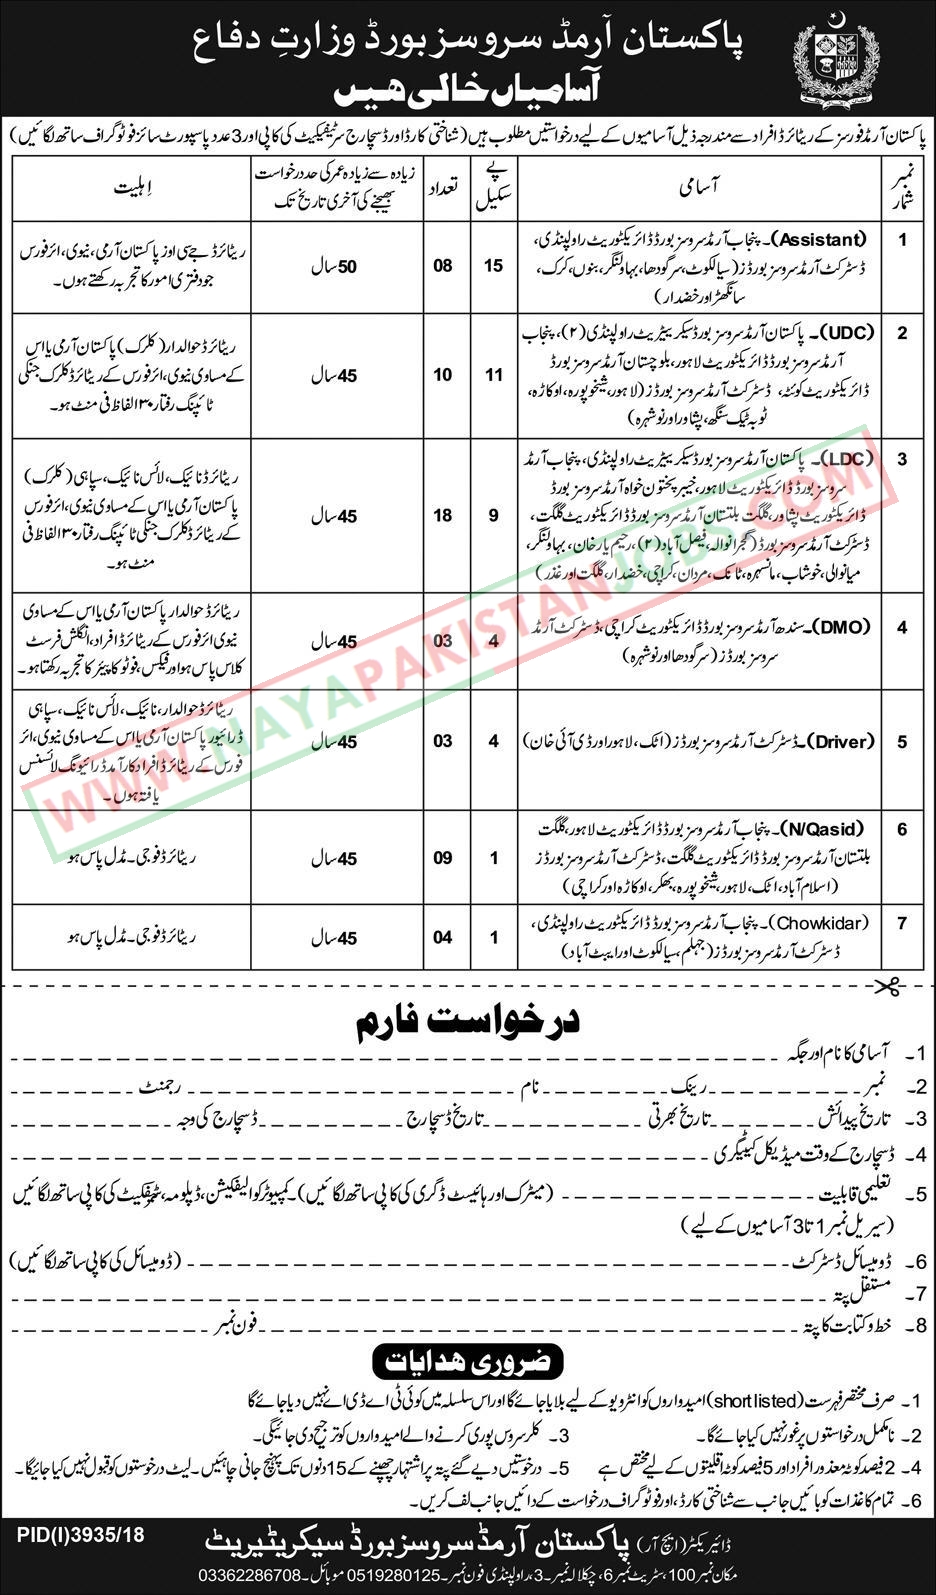 Ministry of Defence Jobs 2019, Pakistan Armed Services Board Jobs 2019 Feb | Ministry Of Defense